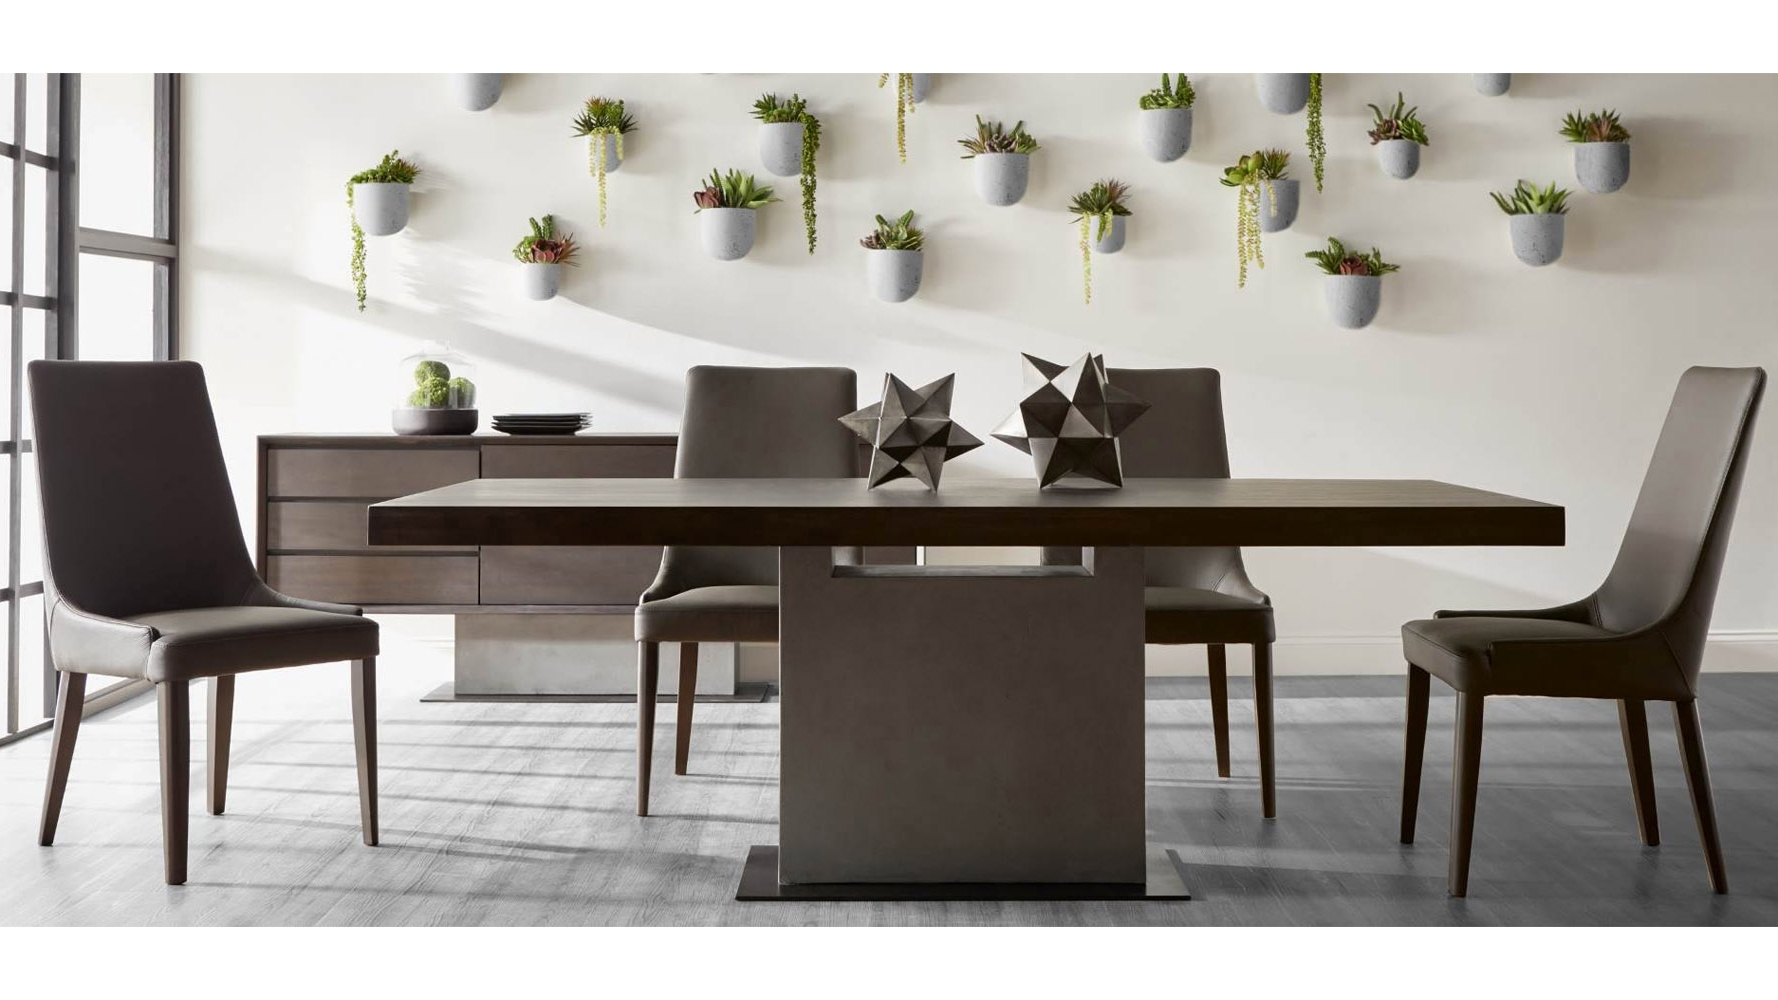 Encino Espresso Rectangular Dining Table – Dining Tables Ideas Inside Fashionable Lindy Espresso Rectangle Dining Tables (View 4 of 25)